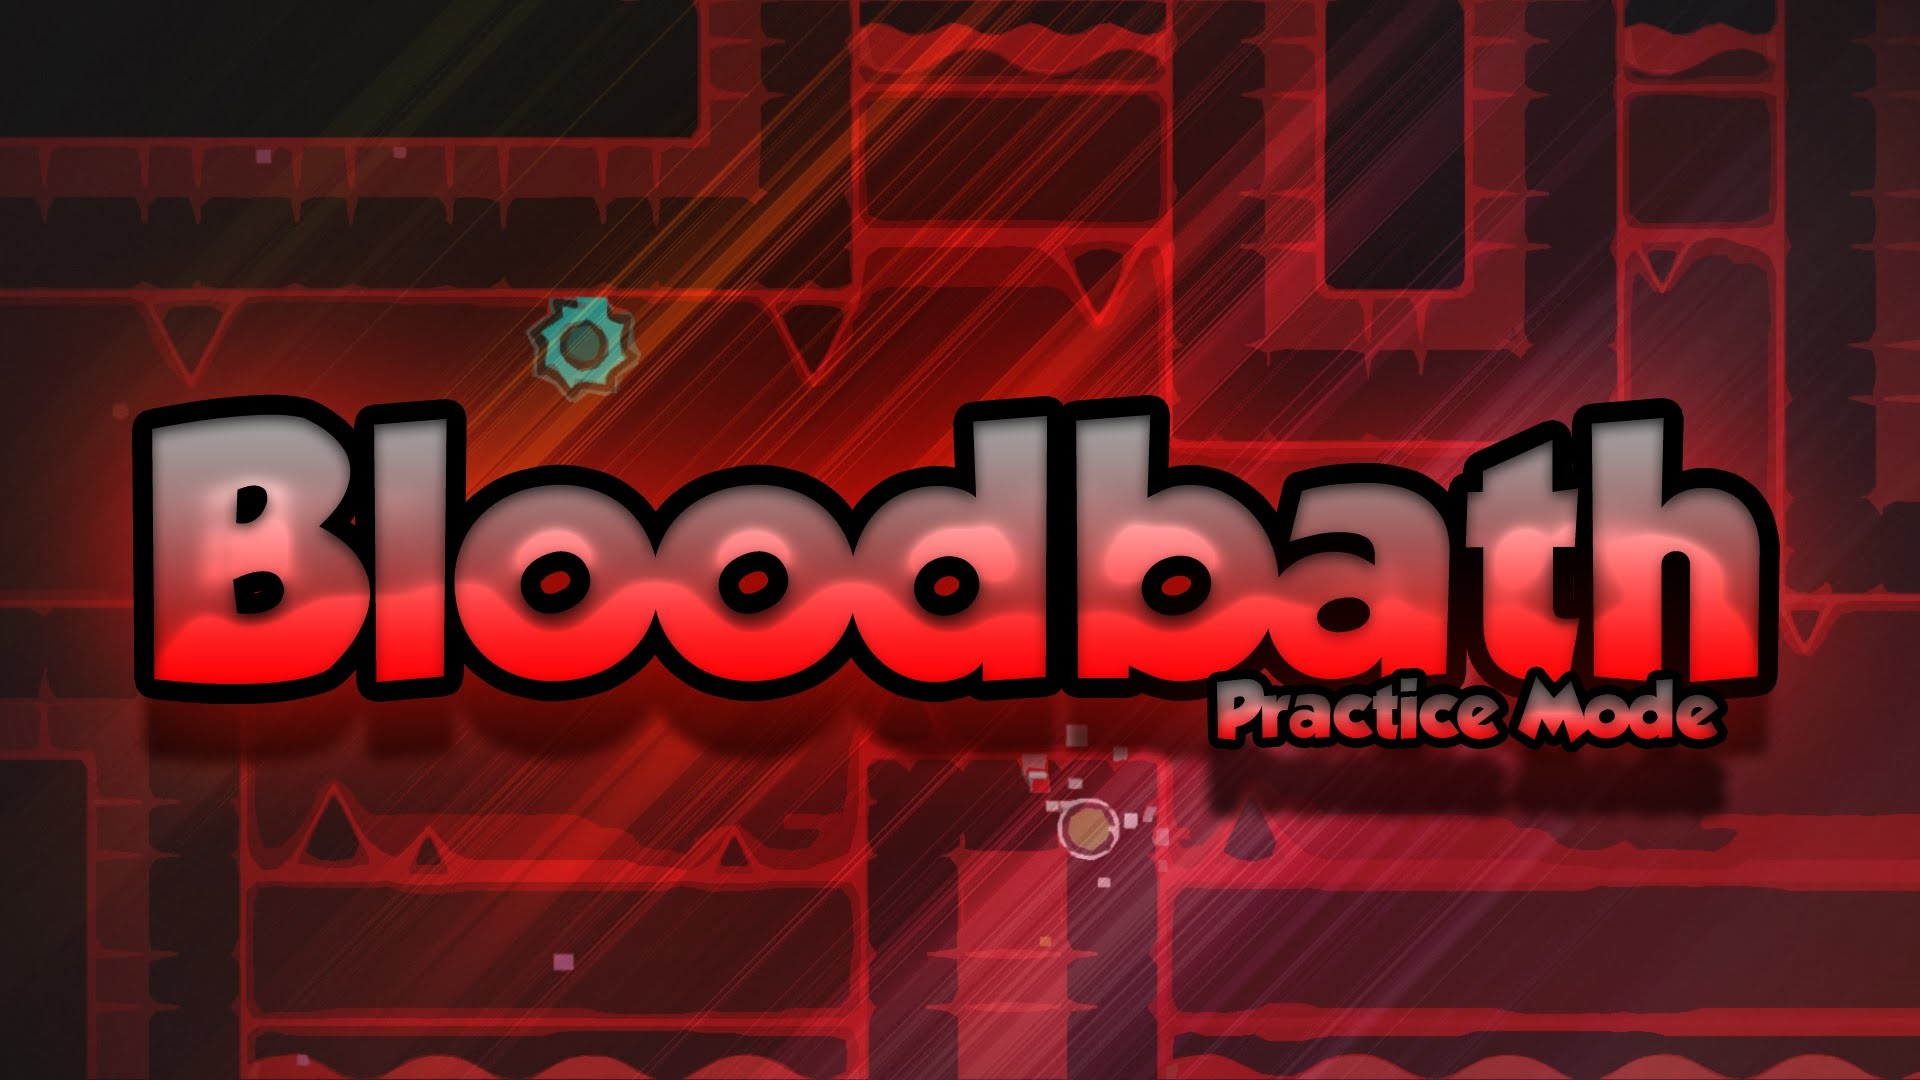 Res: 1920x1080, Nice Images Collection: Bloodbath Desktop Wallpapers